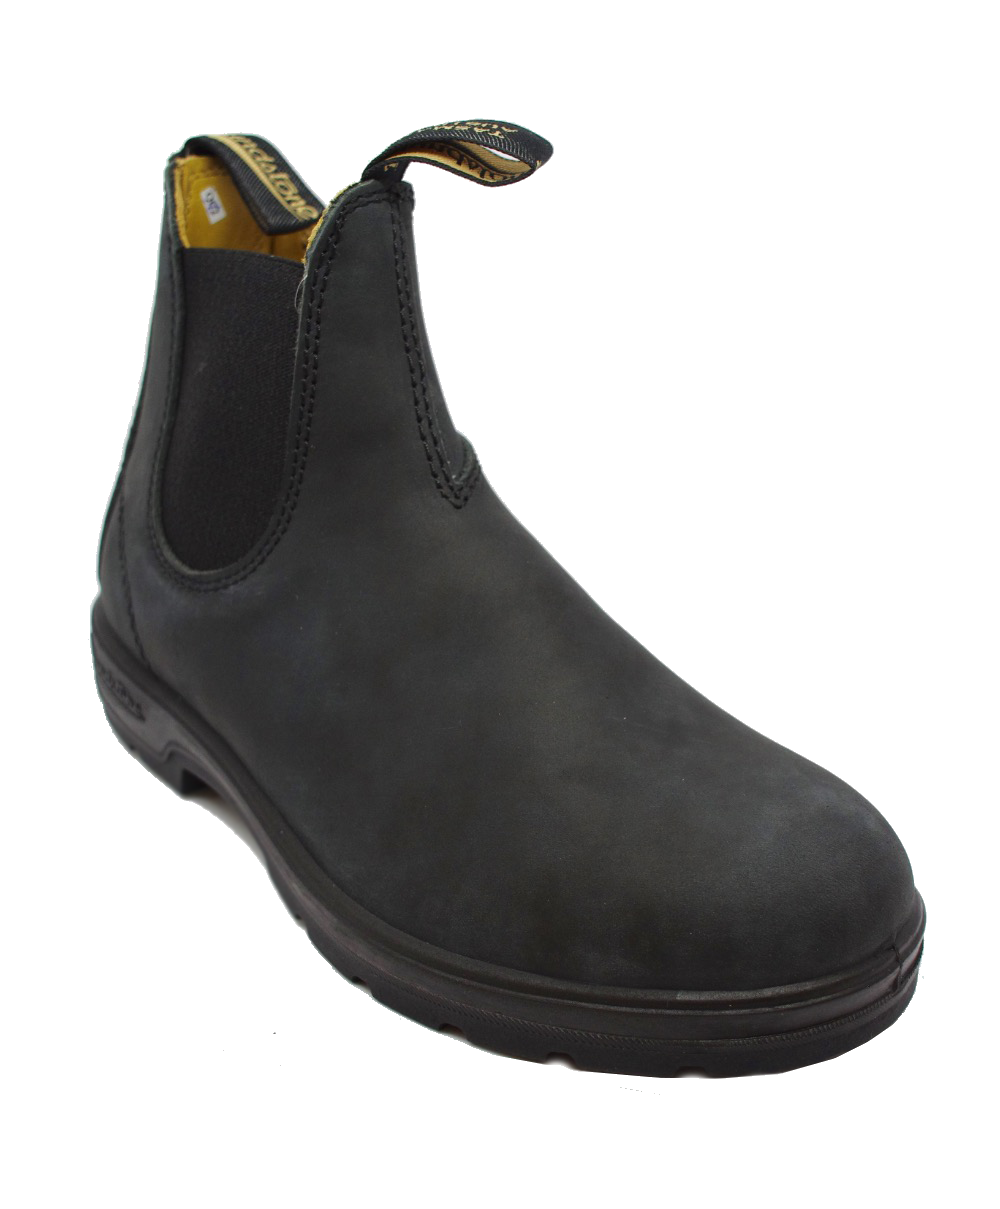 Blundstone 587 Chelsea Boot in Black Rustic